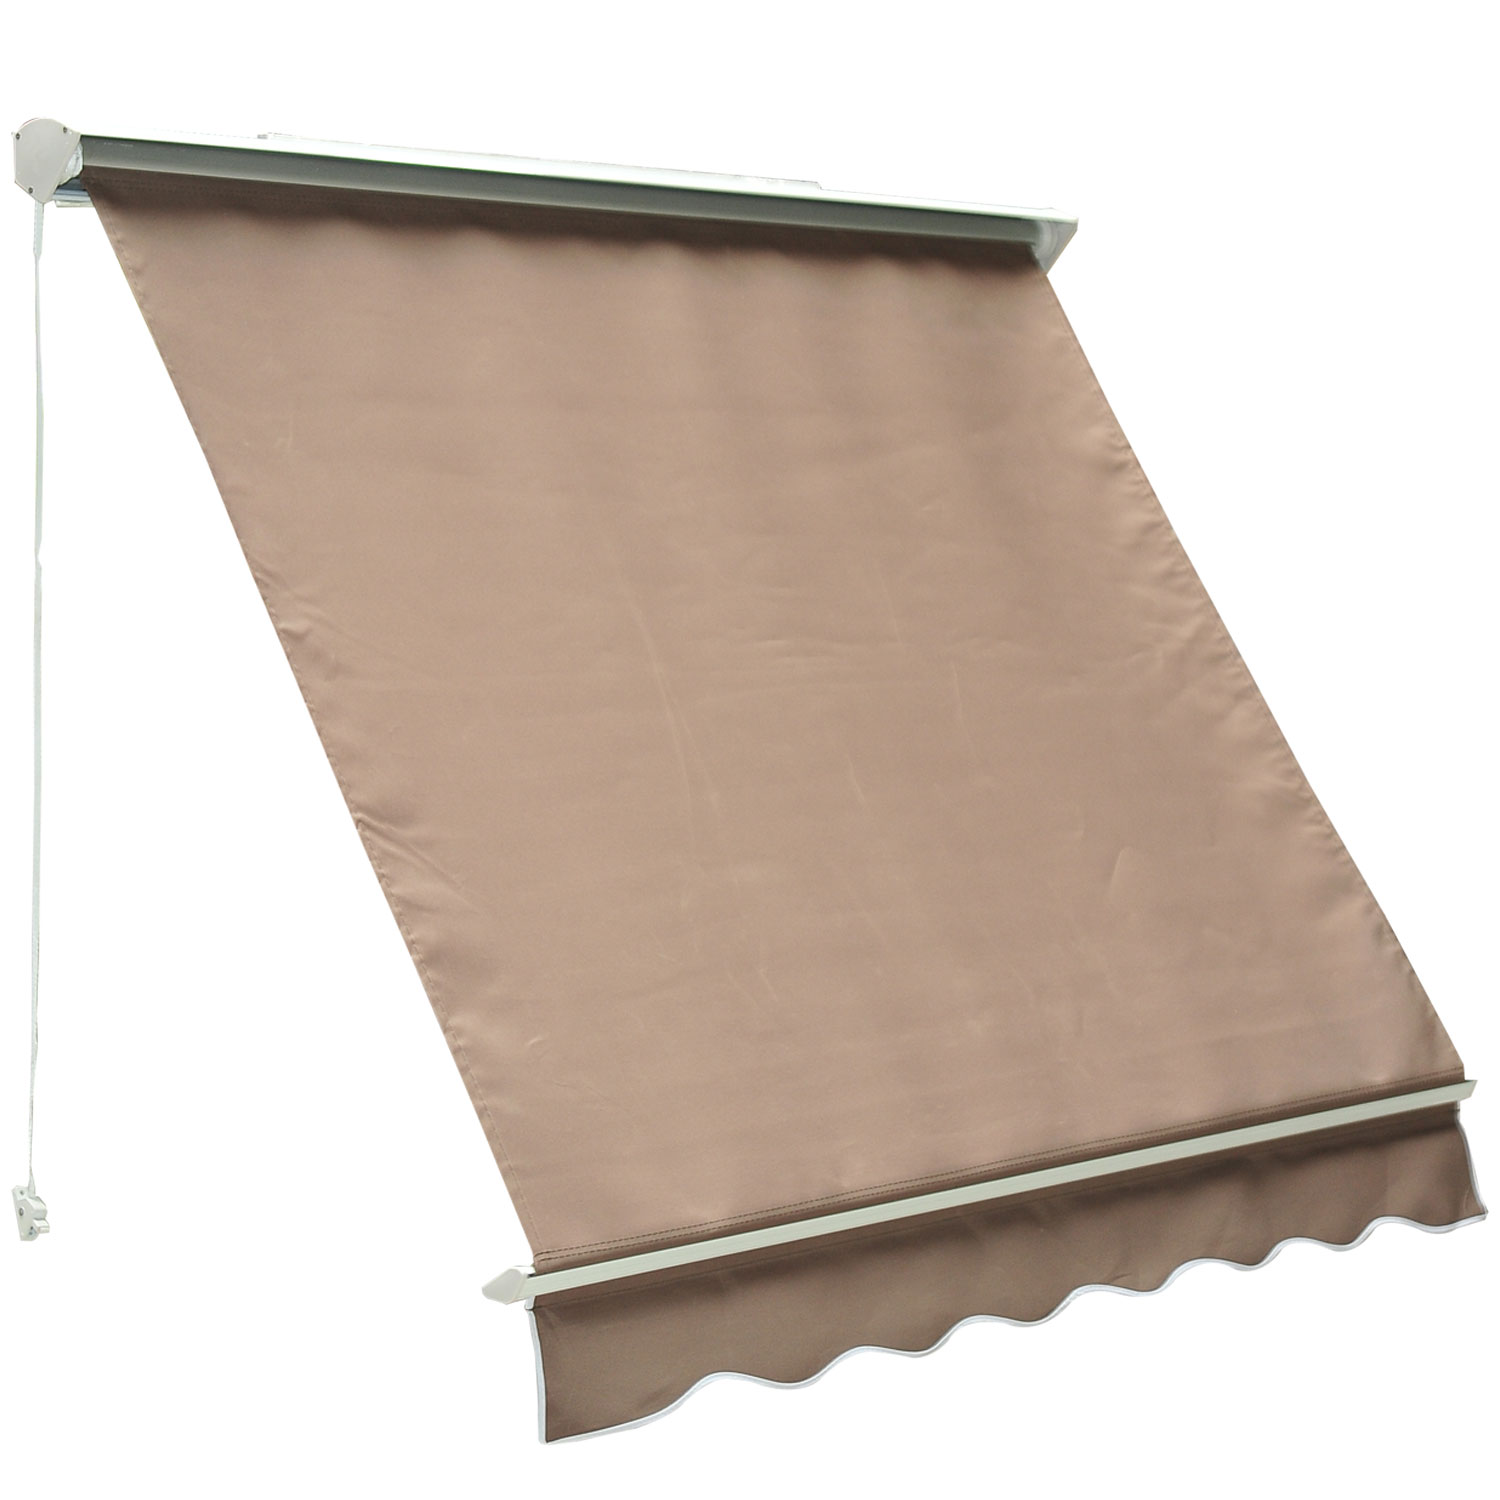 Outsunny 6u0027 Drop Arm Manual Retractable Window Awning   Brown